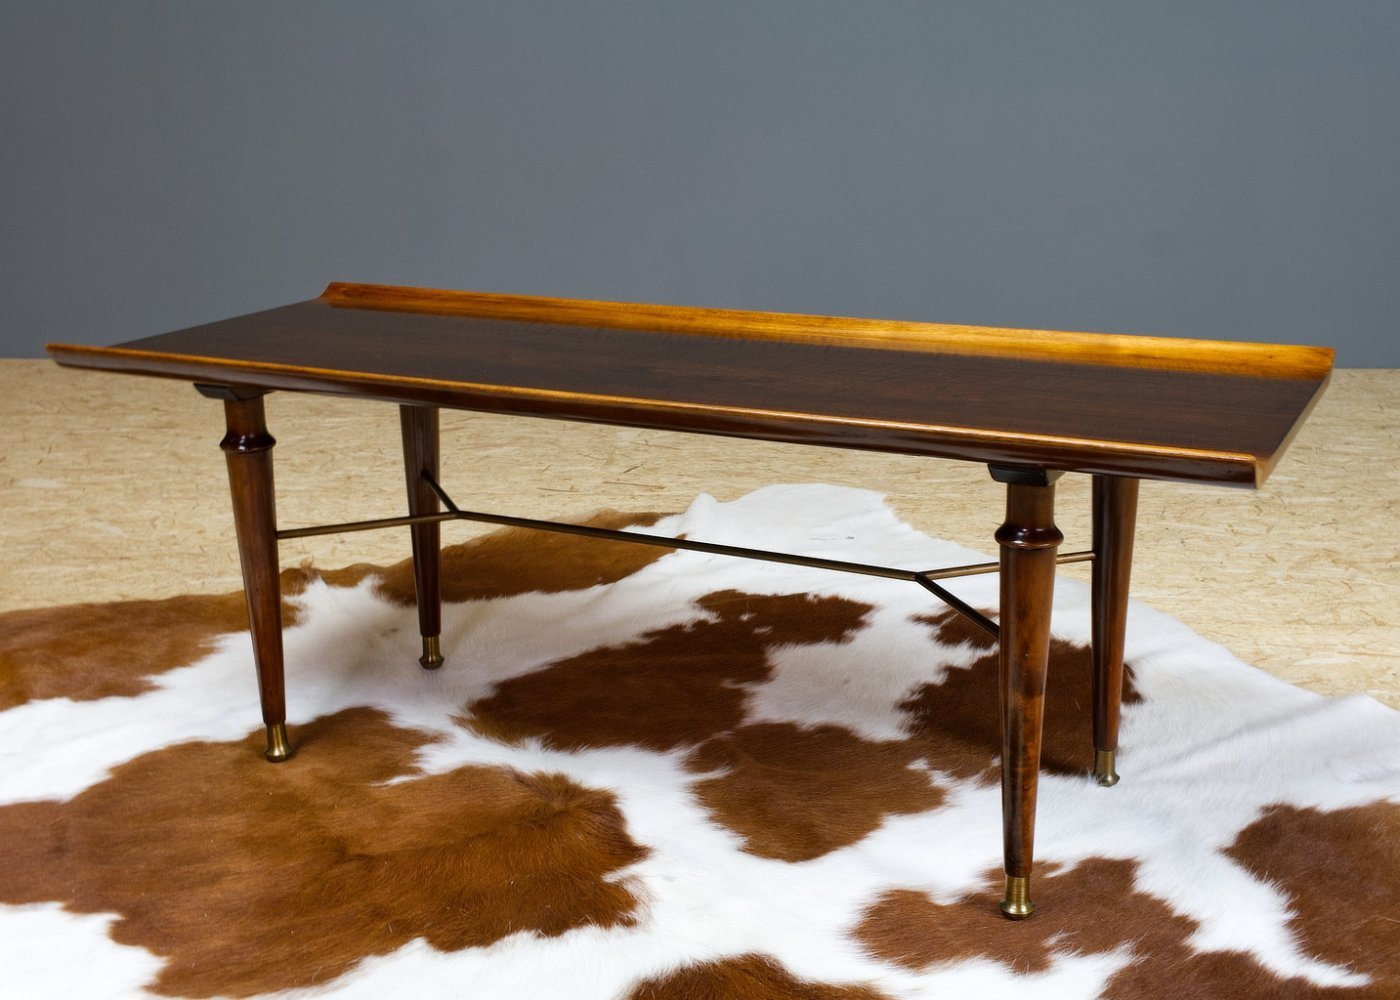 Mahogany & Brass Art Deco coffee table by A.Patijn, 1950s